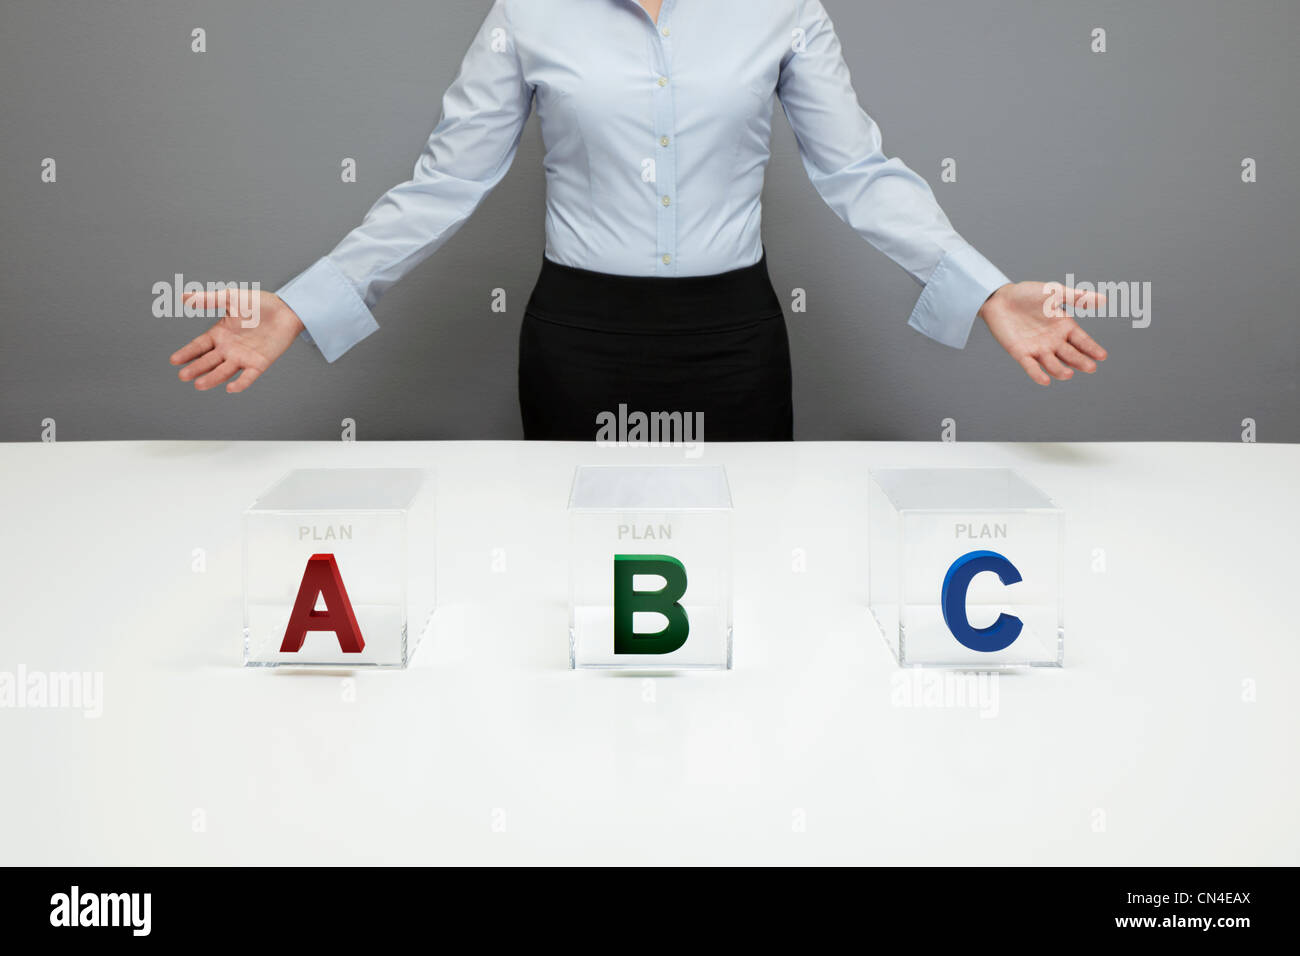 Business woman with boxes labelled A,B and C Stock Photo